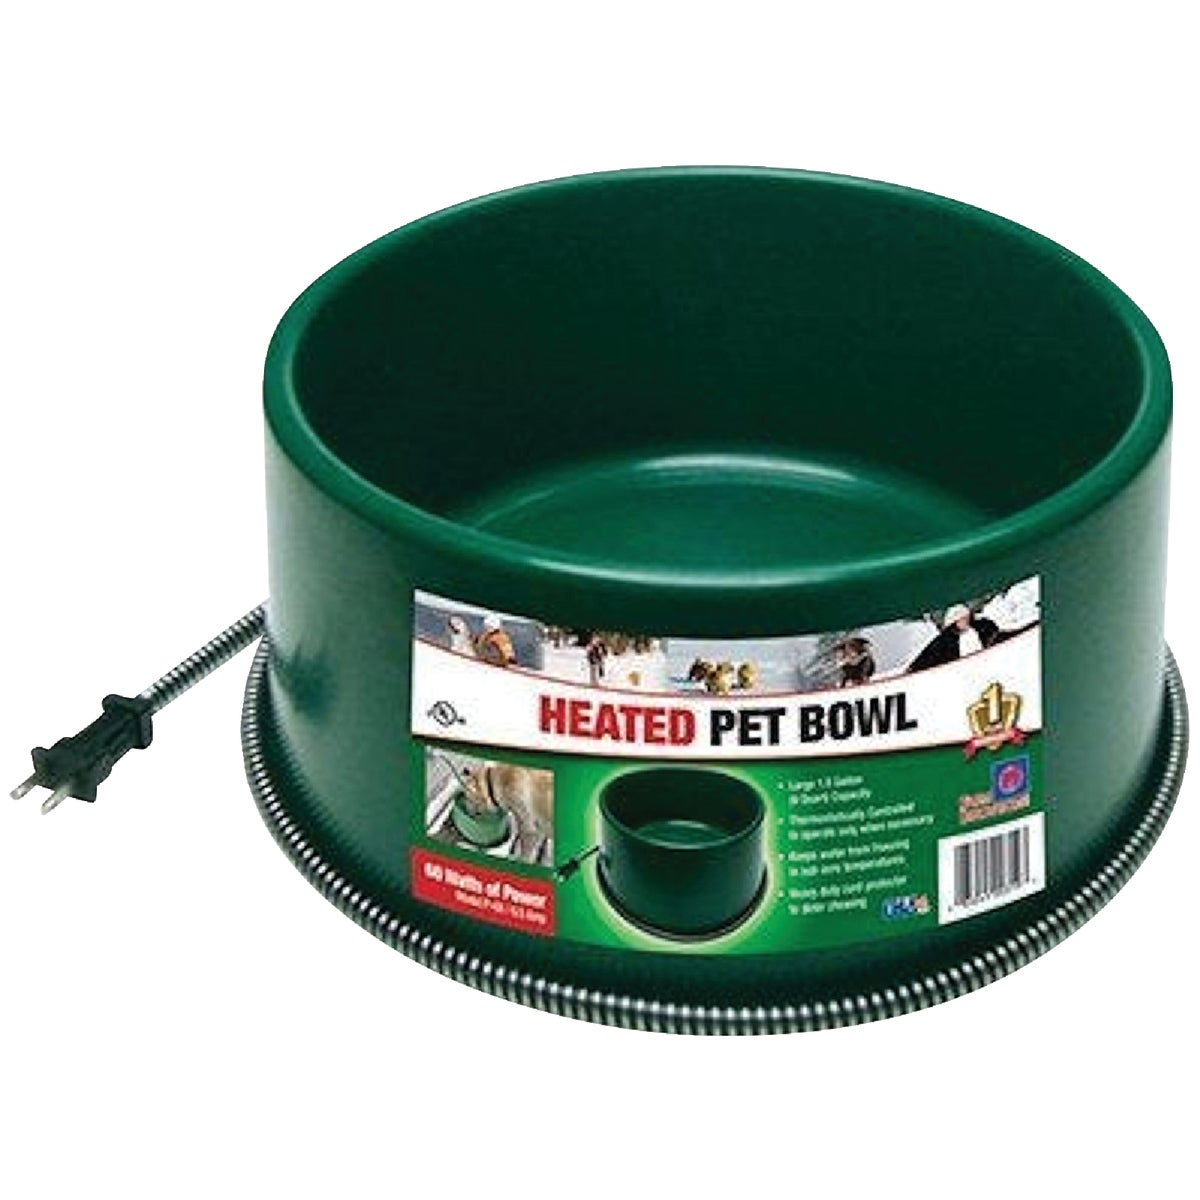 5QT HEATED PET BOWL - 93UL-1 by Allied Precision